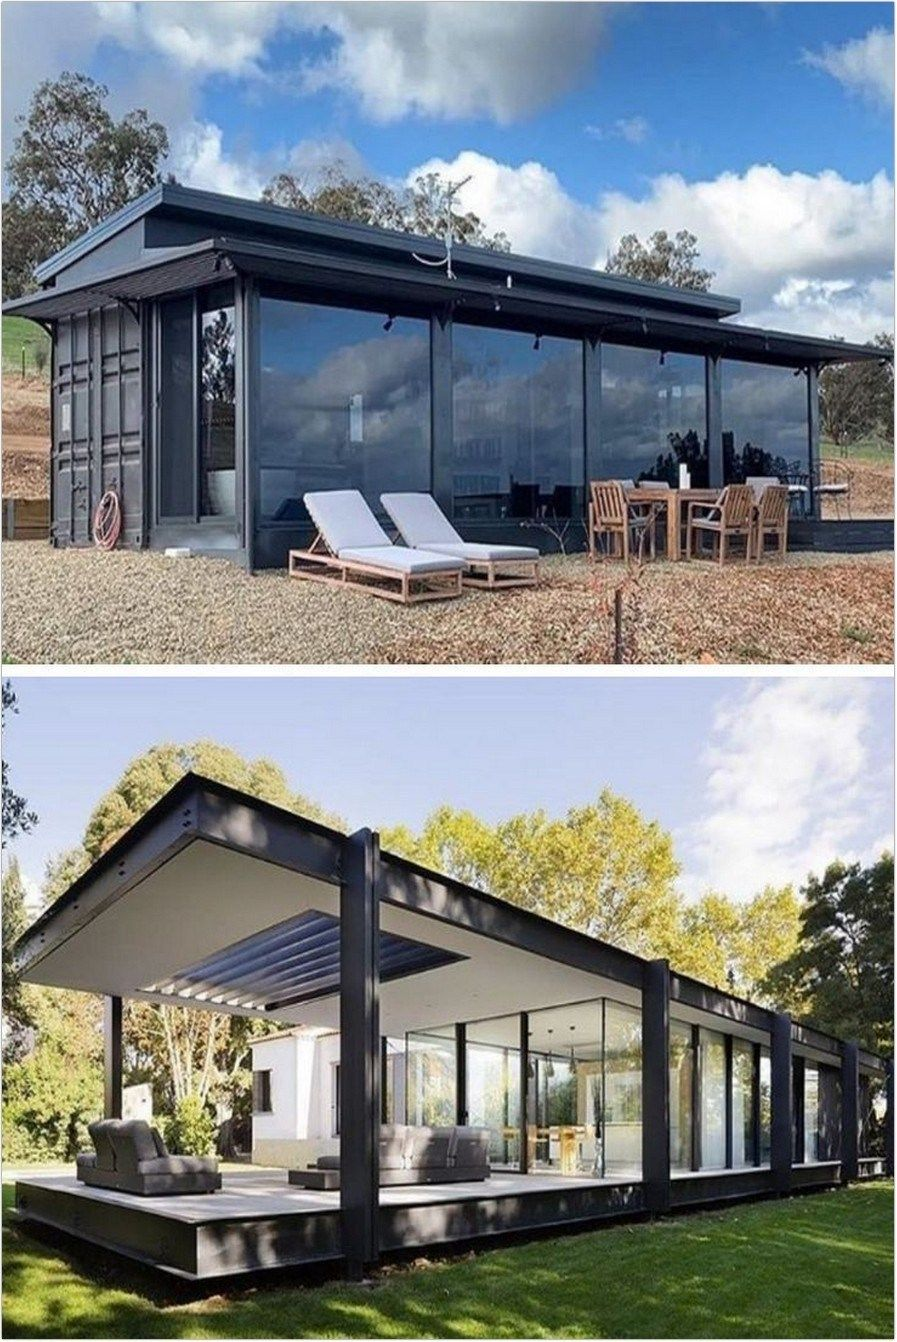 101 Super Modern Shipping Container Houses Ideas,